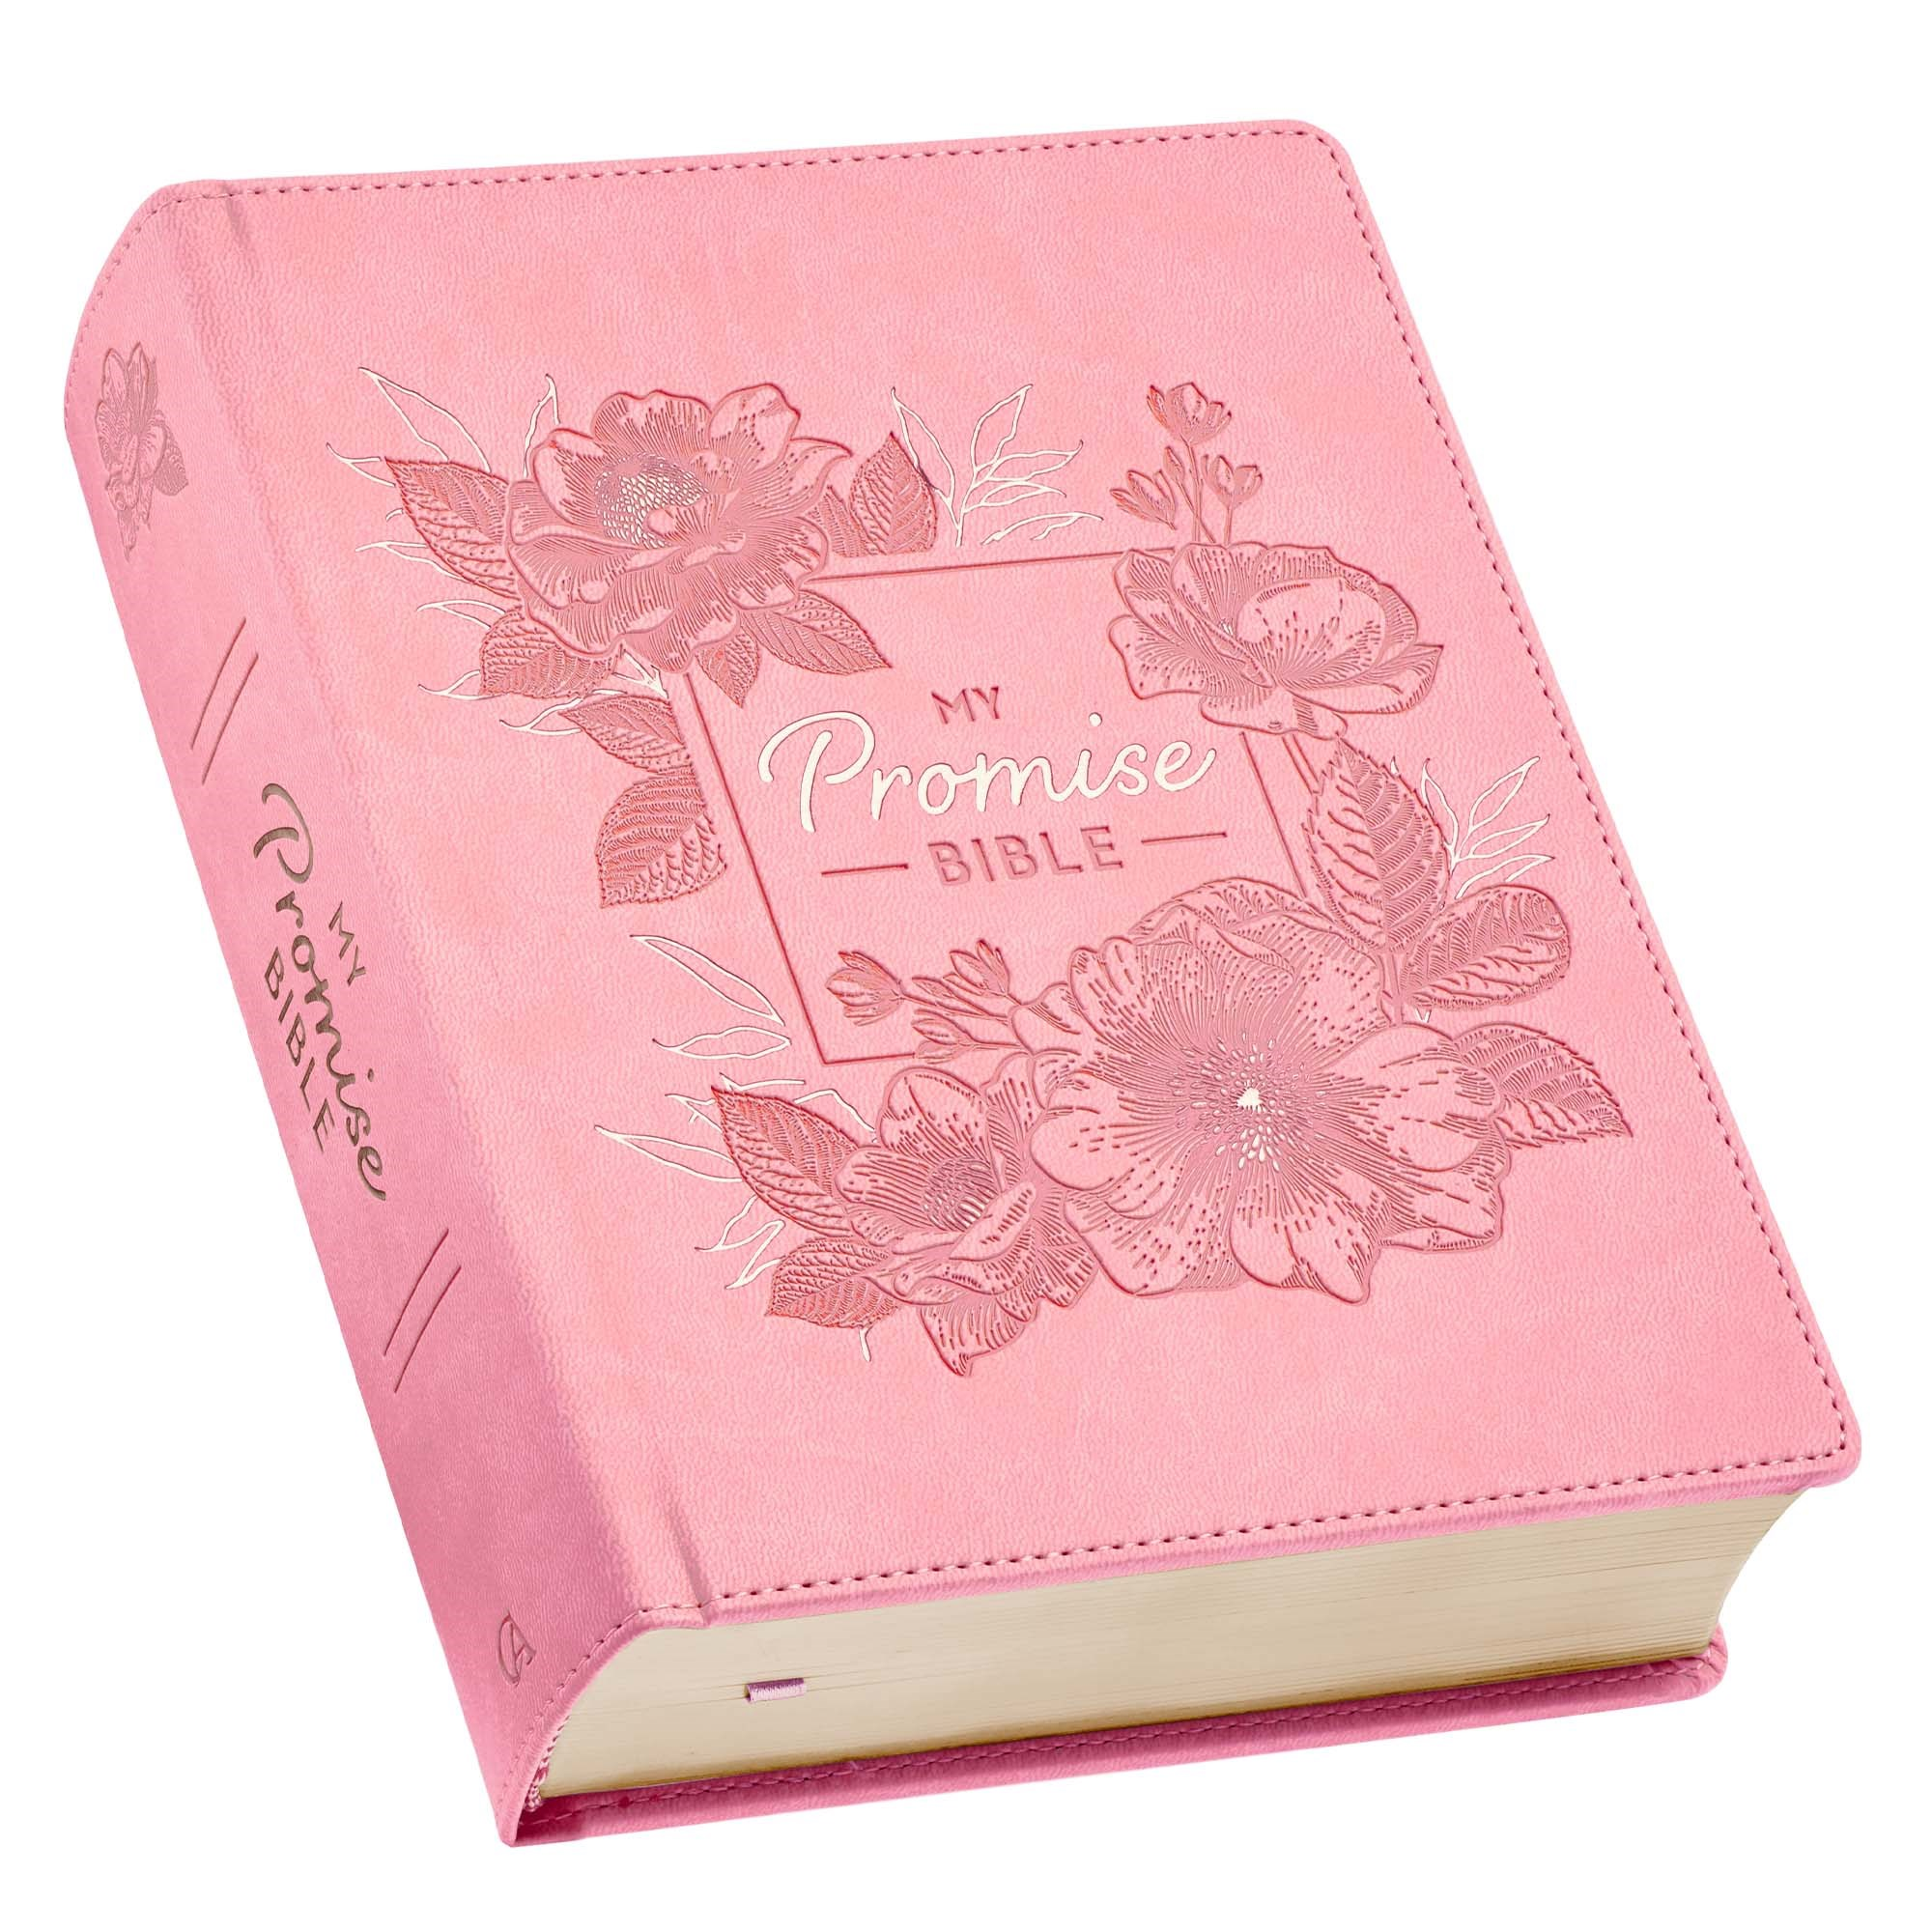 KJV My Promise Bible-Pink Square Faux Leather Hardcover